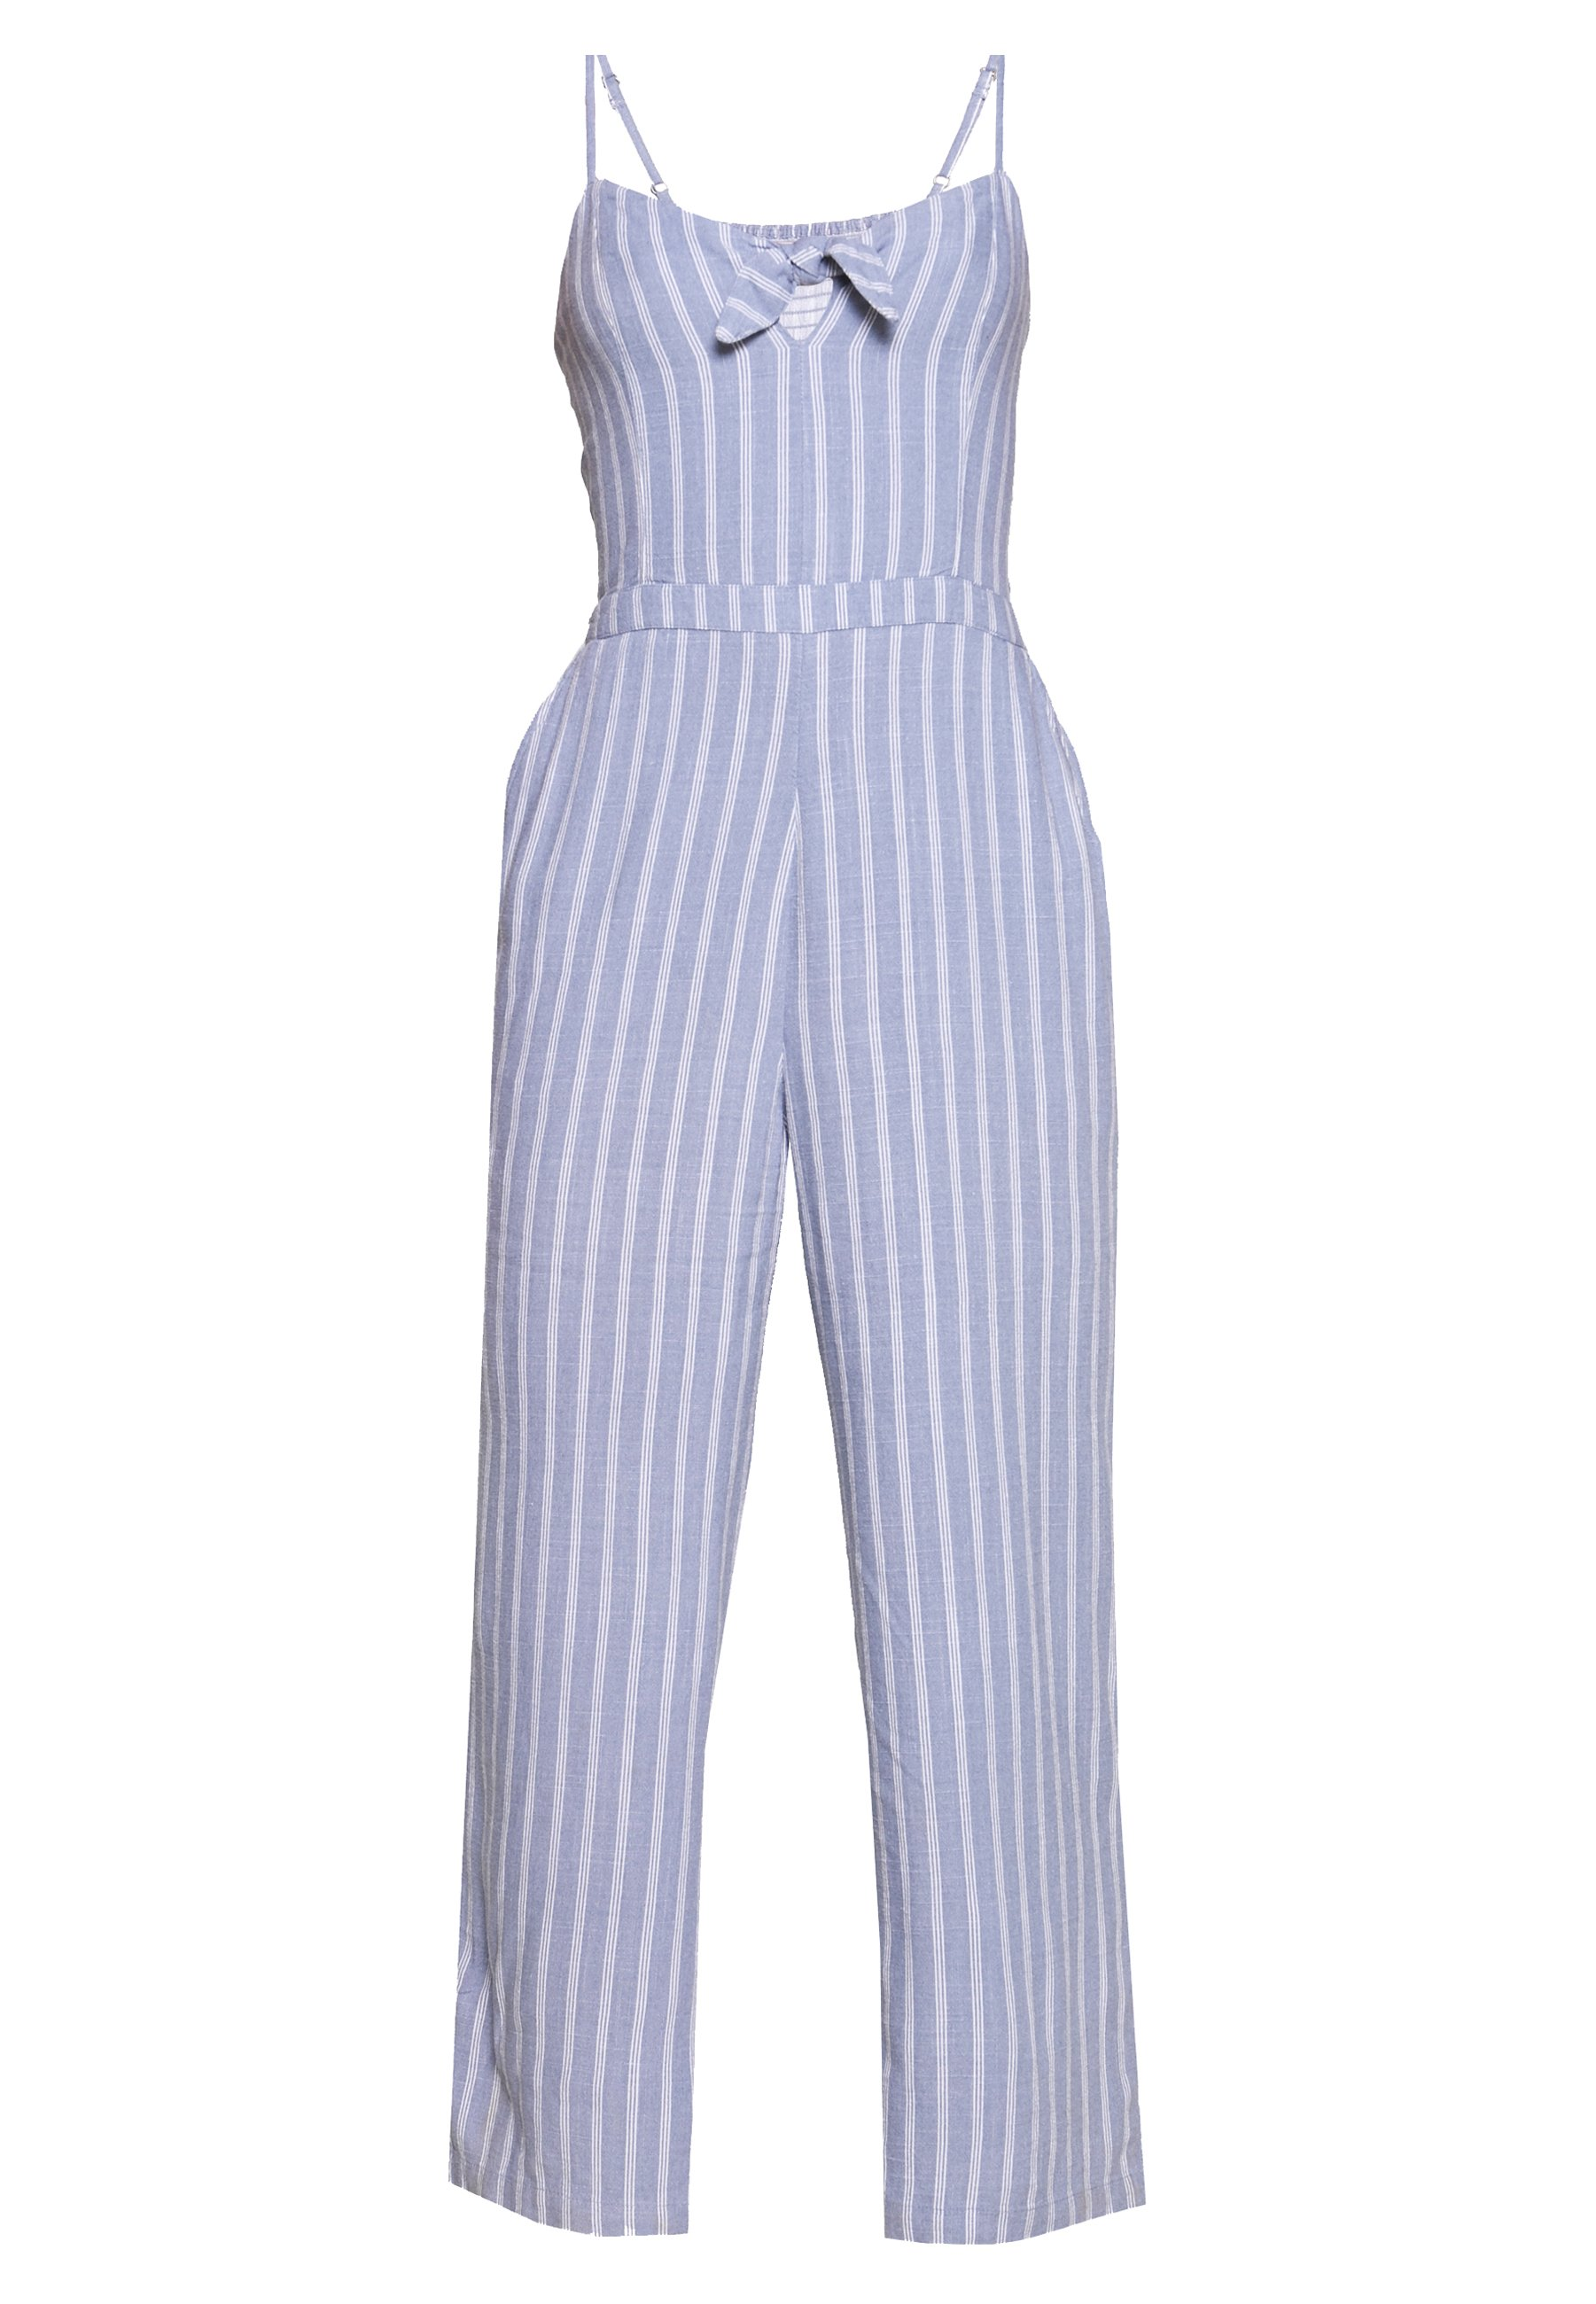 Abercrombie & Fitch Tie Front - Jumpsuit Blue/white